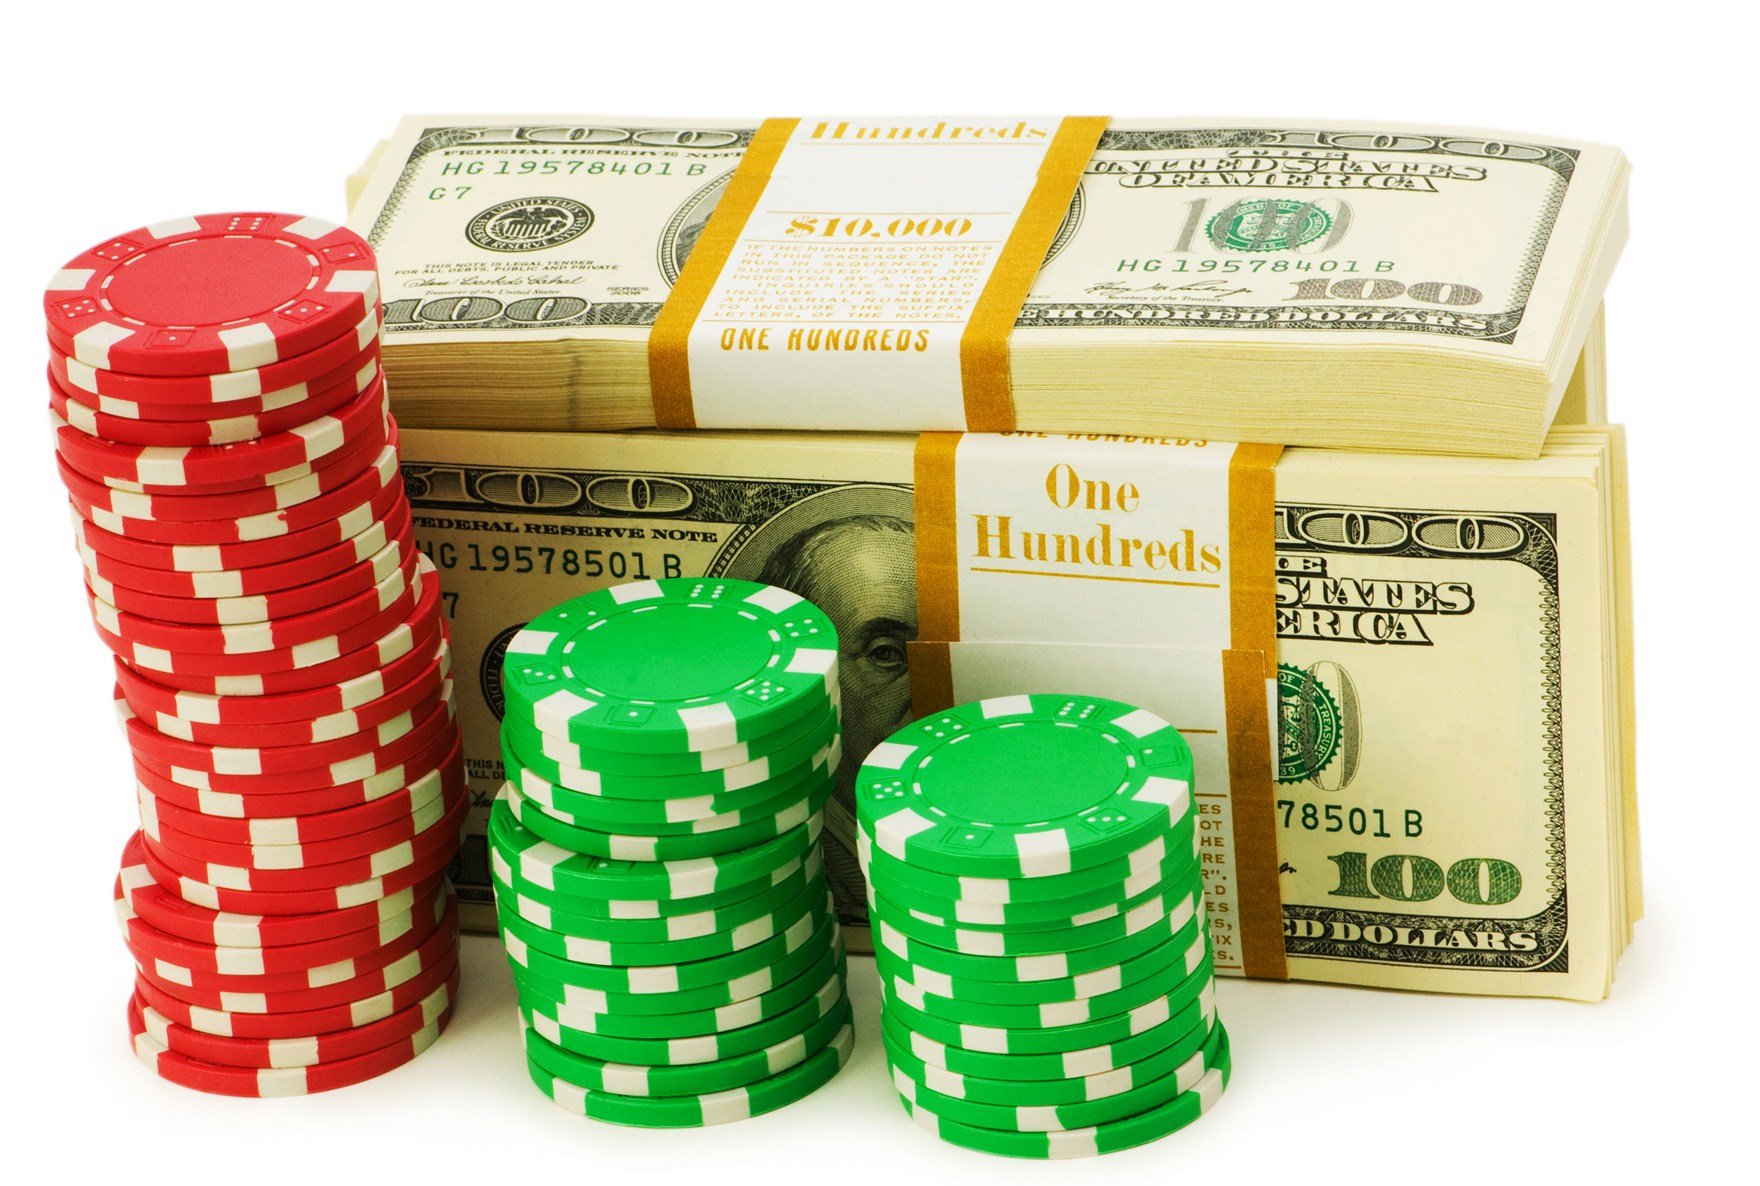 Low buy in poker tournament strategy